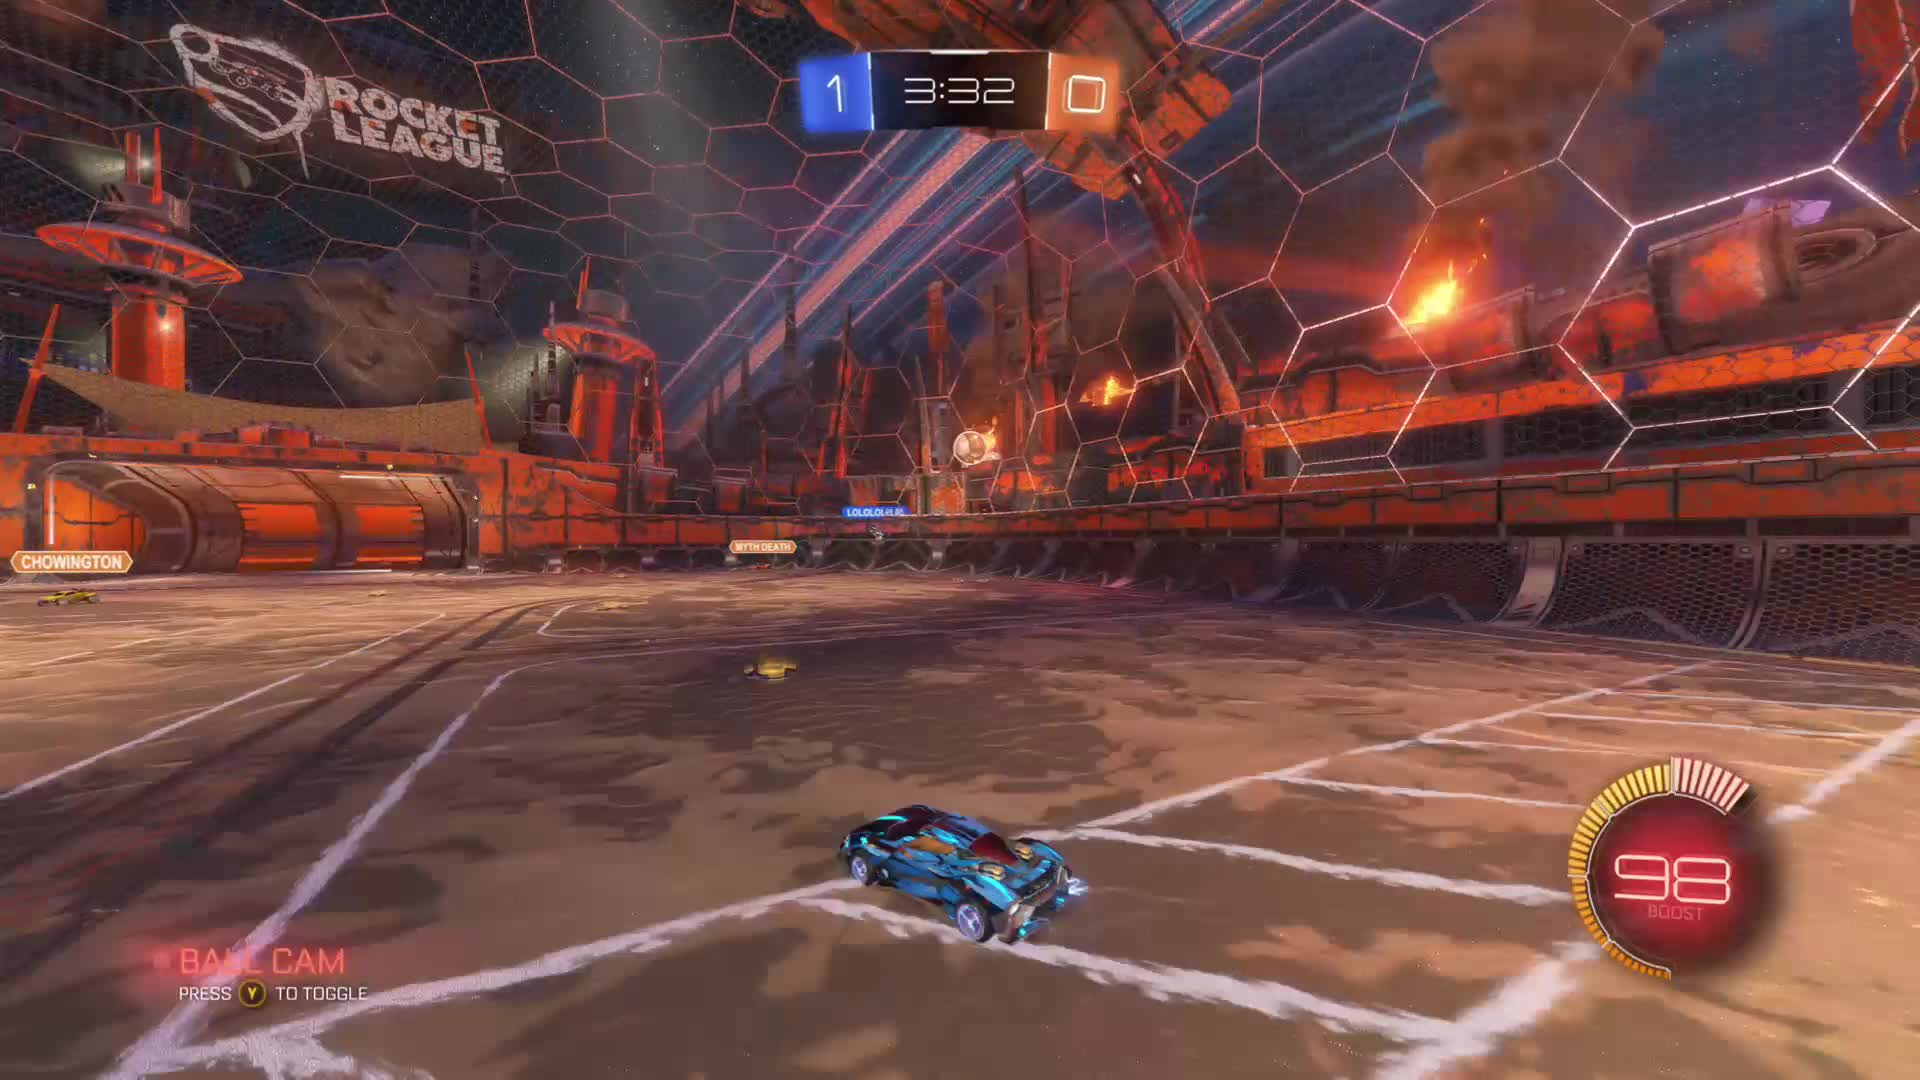 RocketLeague, gamer dvr, ixDusky, xbox, xbox one, They both left immediately GIFs